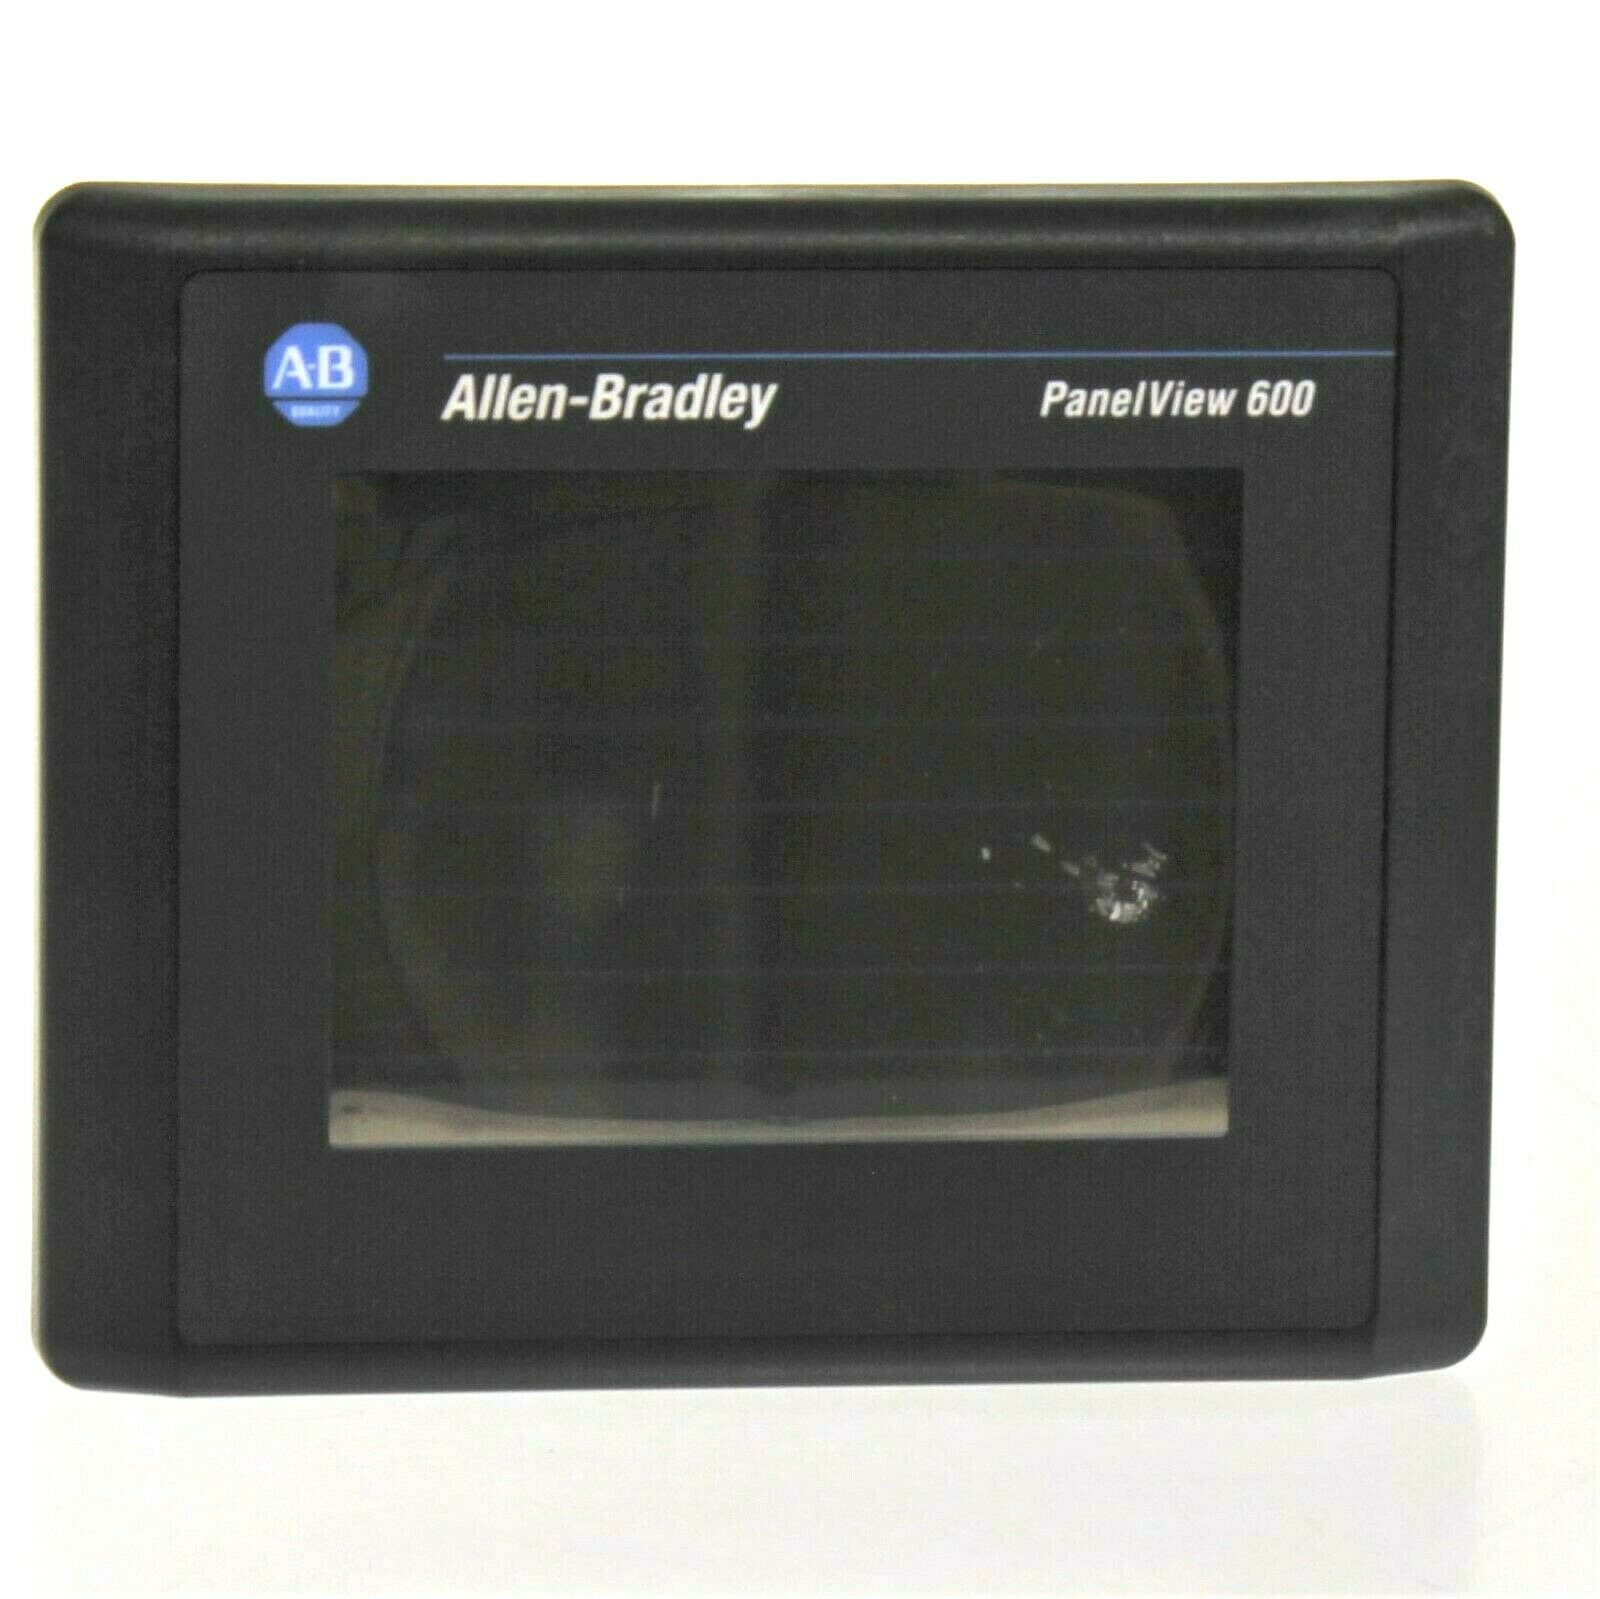 Allen Bradley 2711-T6C1L1 /B PanelView 600 Color Touchscreen F/W 4.30